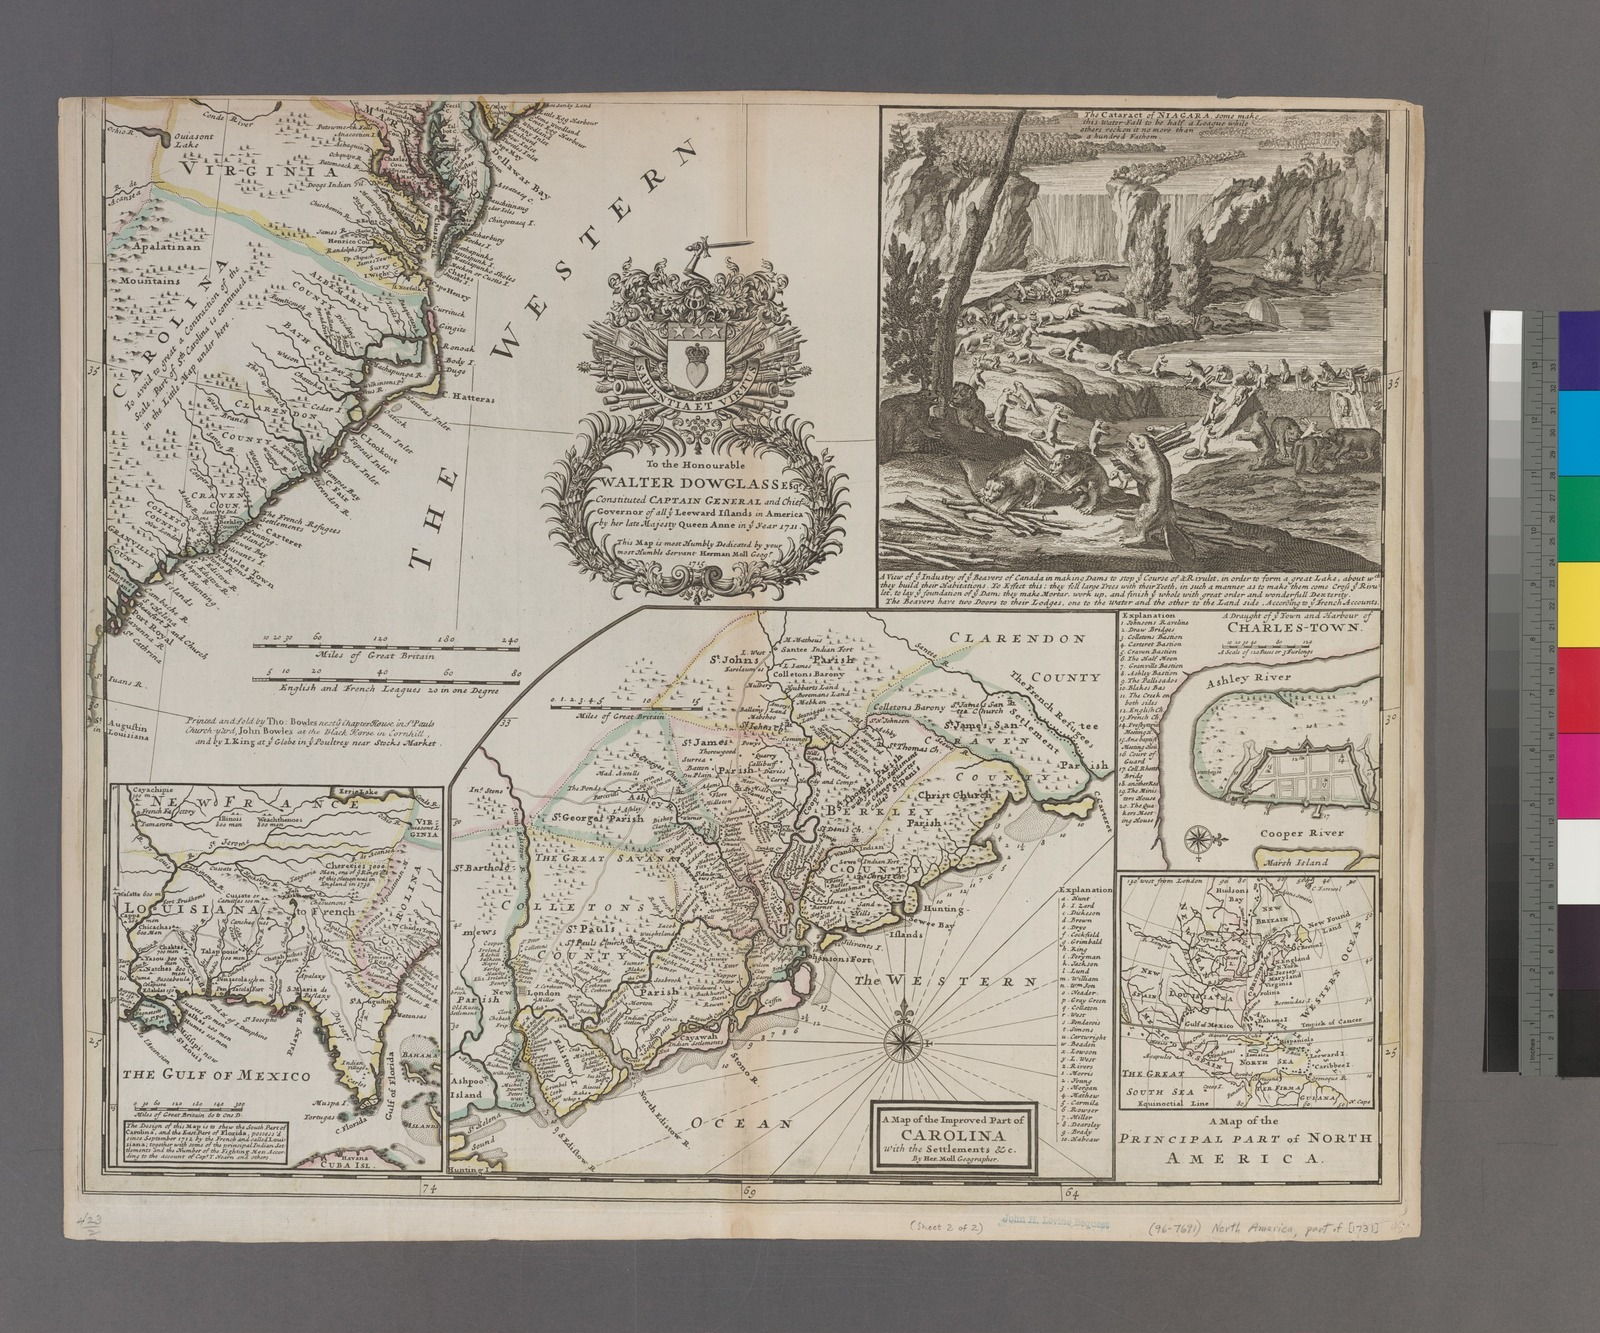 A new and exact map of the dominions of the King of Great Britain on ye continent of North America : containing Newfoundland, New Scotland, New England, New York, New Jersey, Pensilvania, Maryland, Virginia and Carolina